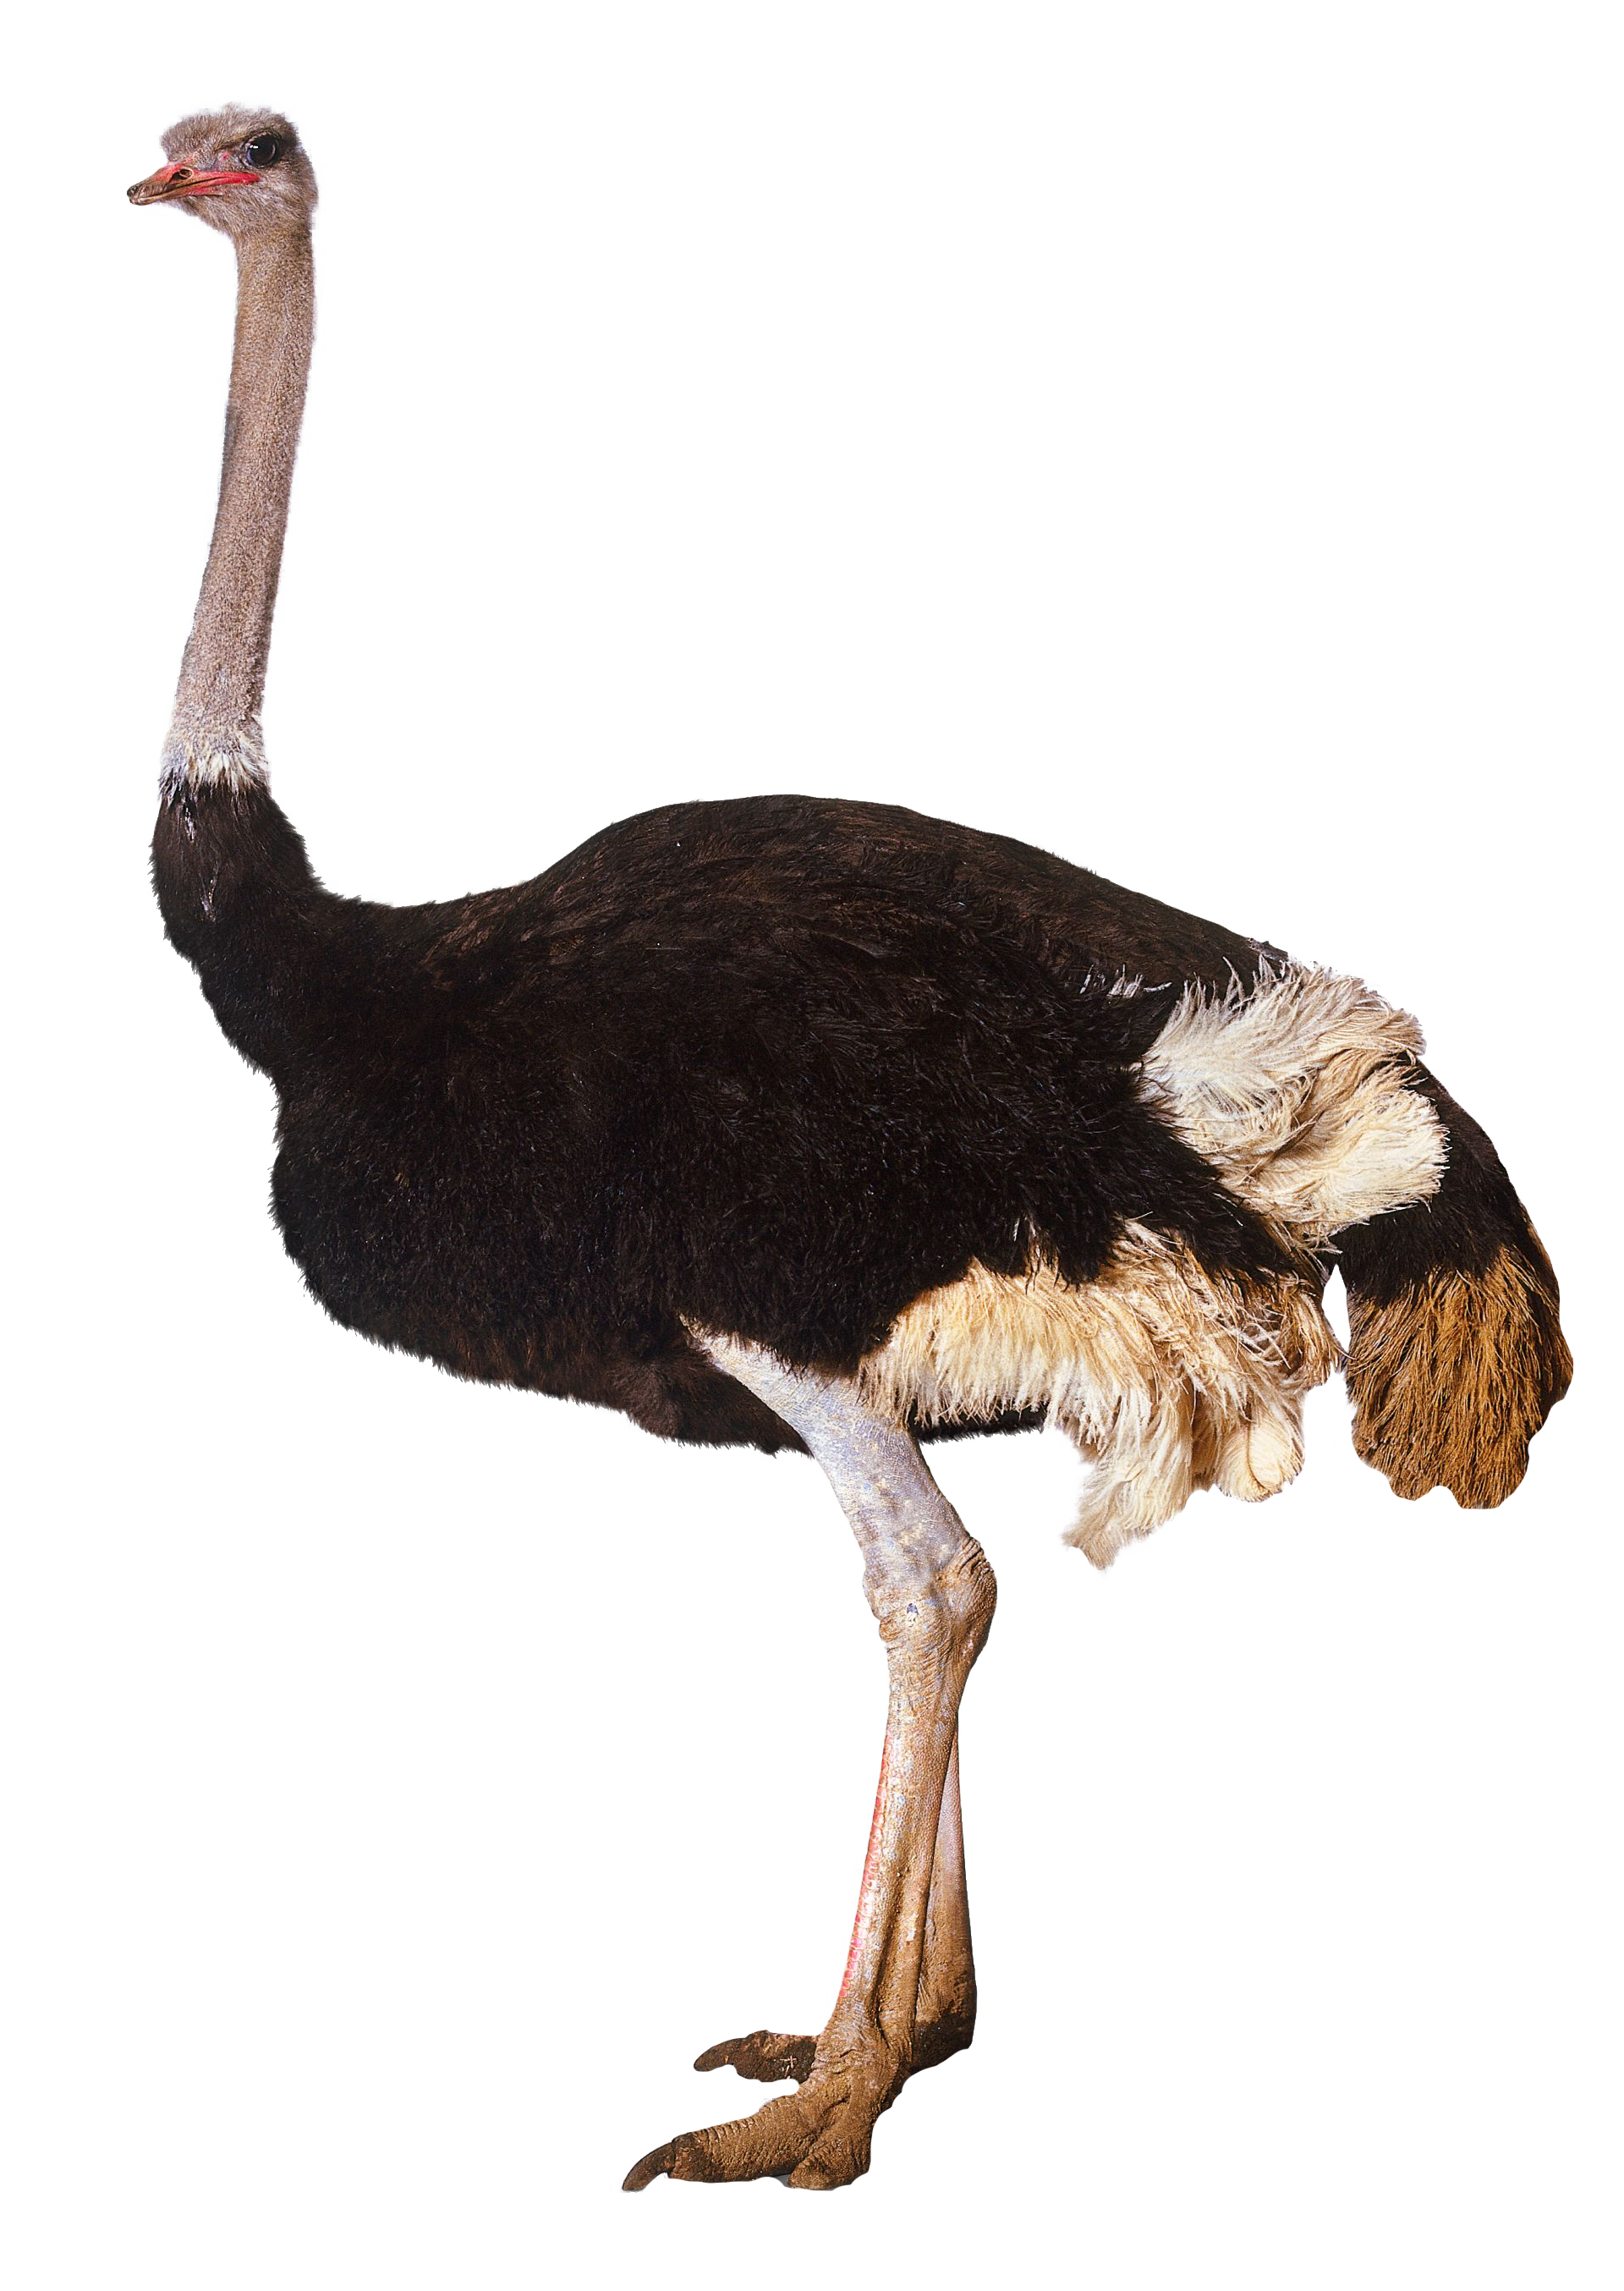 Ostrich clipart white background. Standing png image purepng